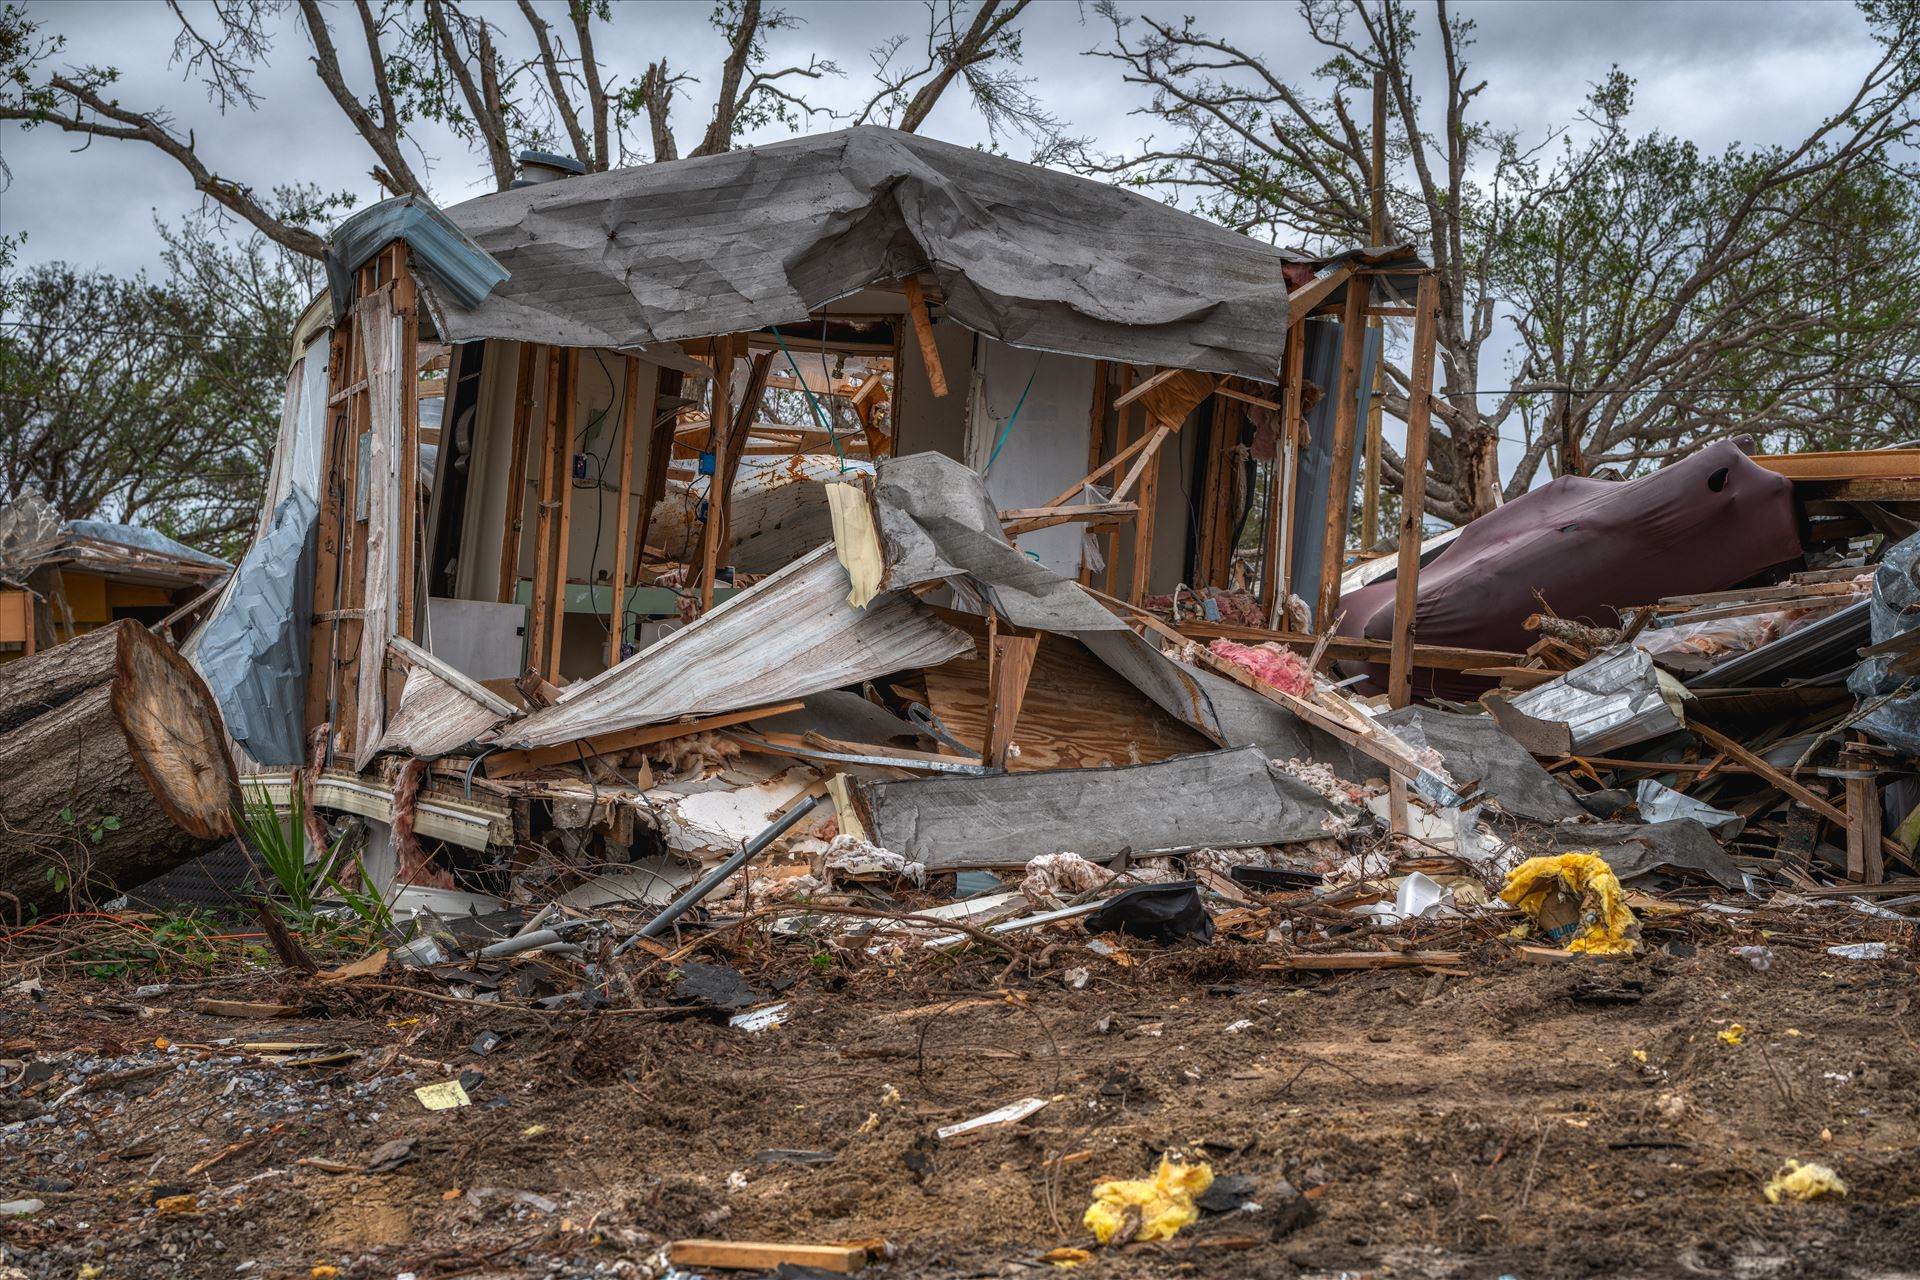 Hurricane Michael - Panama City, Florida, USA 01-05-2019. Mobile home destroyed ss sf-.jpg by Terry Kelly Photography